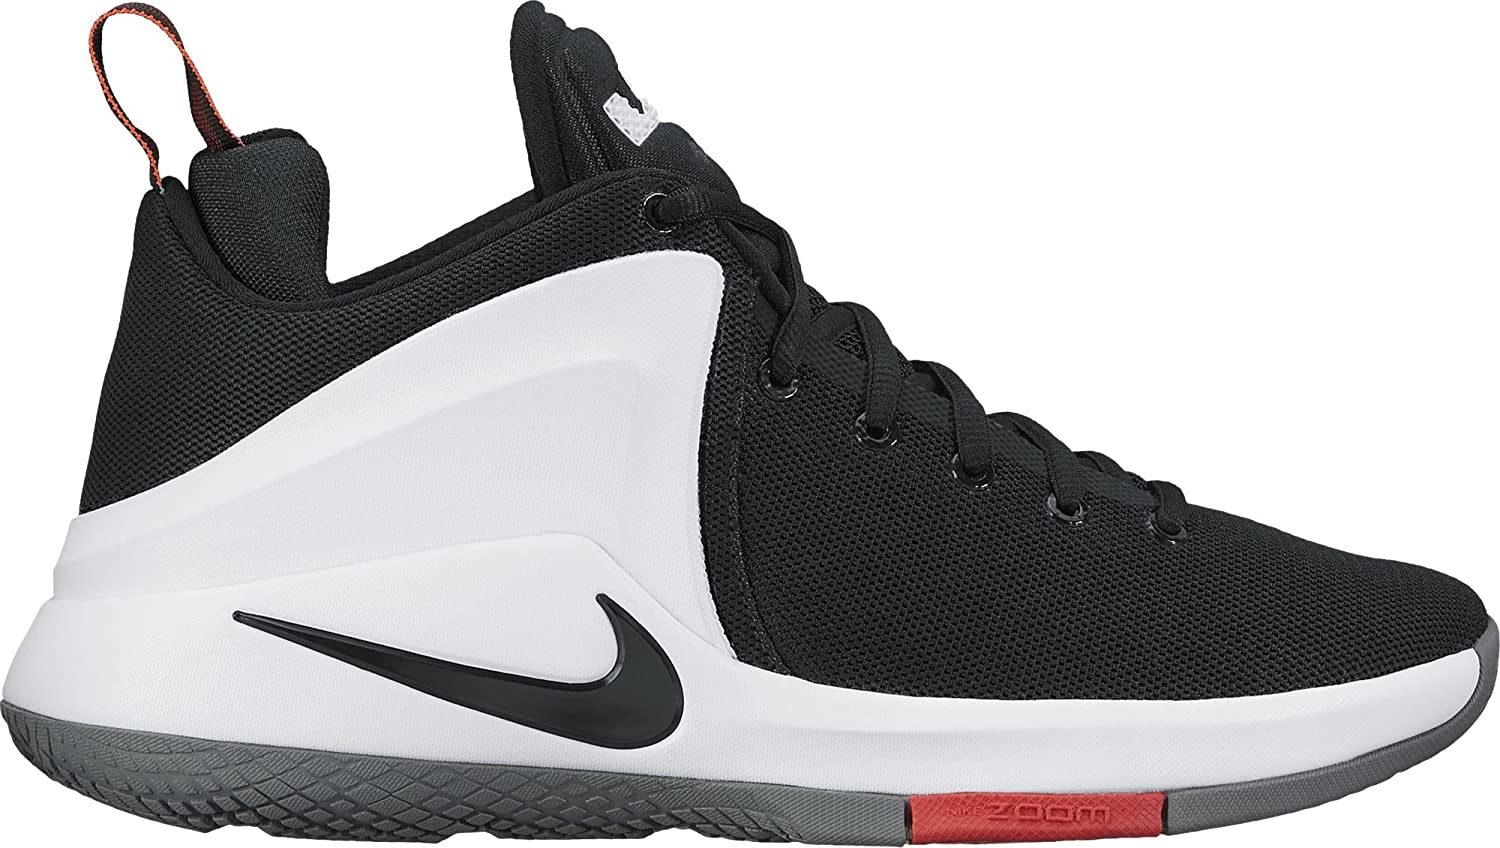 Nike Mens Zoom Witness by Lebron James Lightweight Mid-Top Basketball shoes